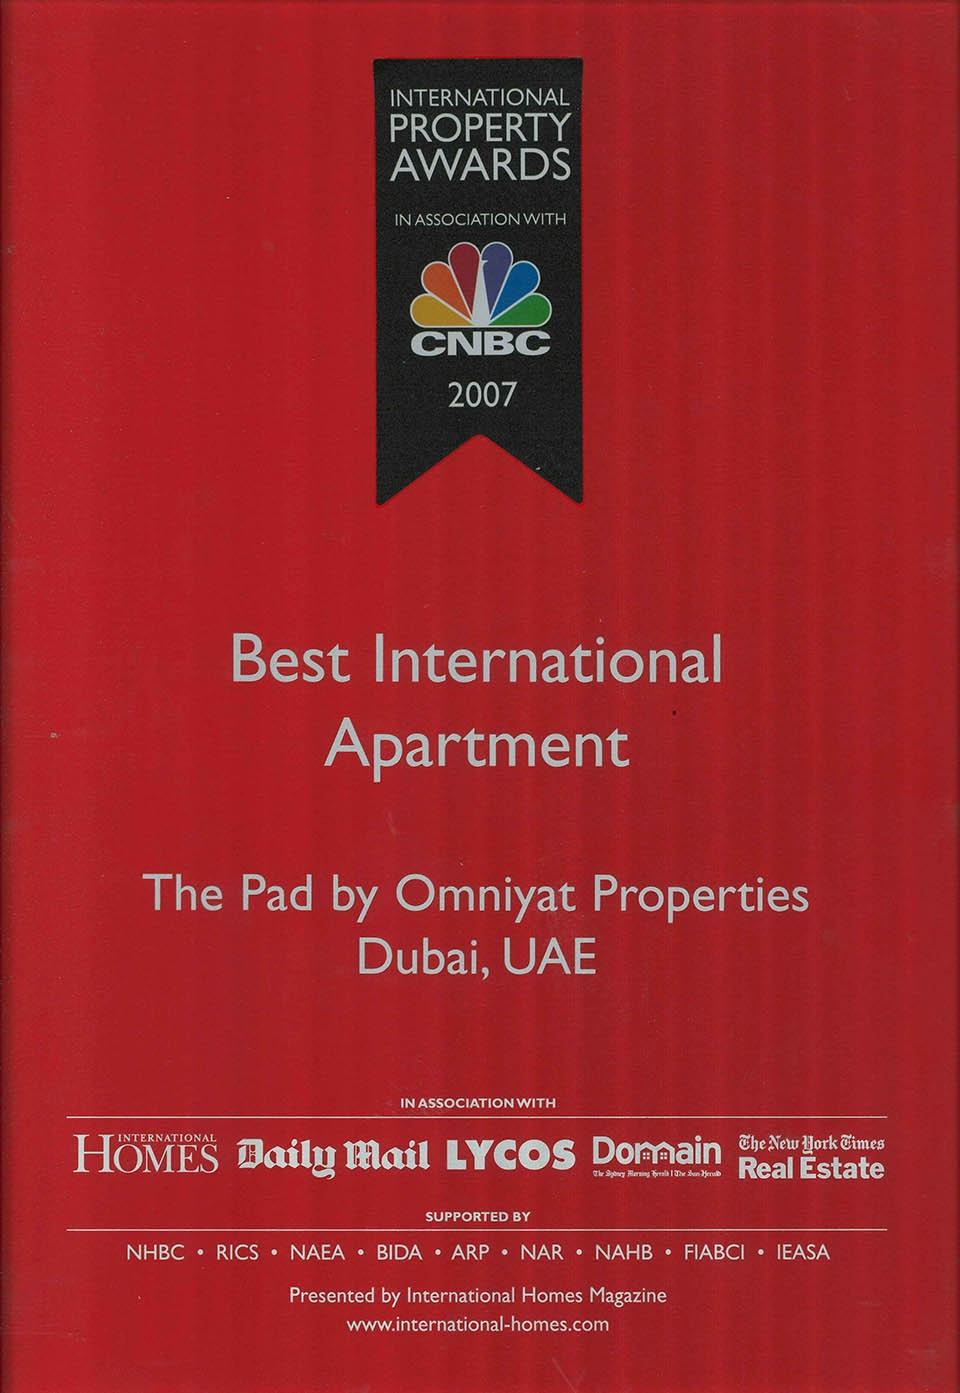 2007 CNBC International Property Awards - Best International Apartment (The Pad)